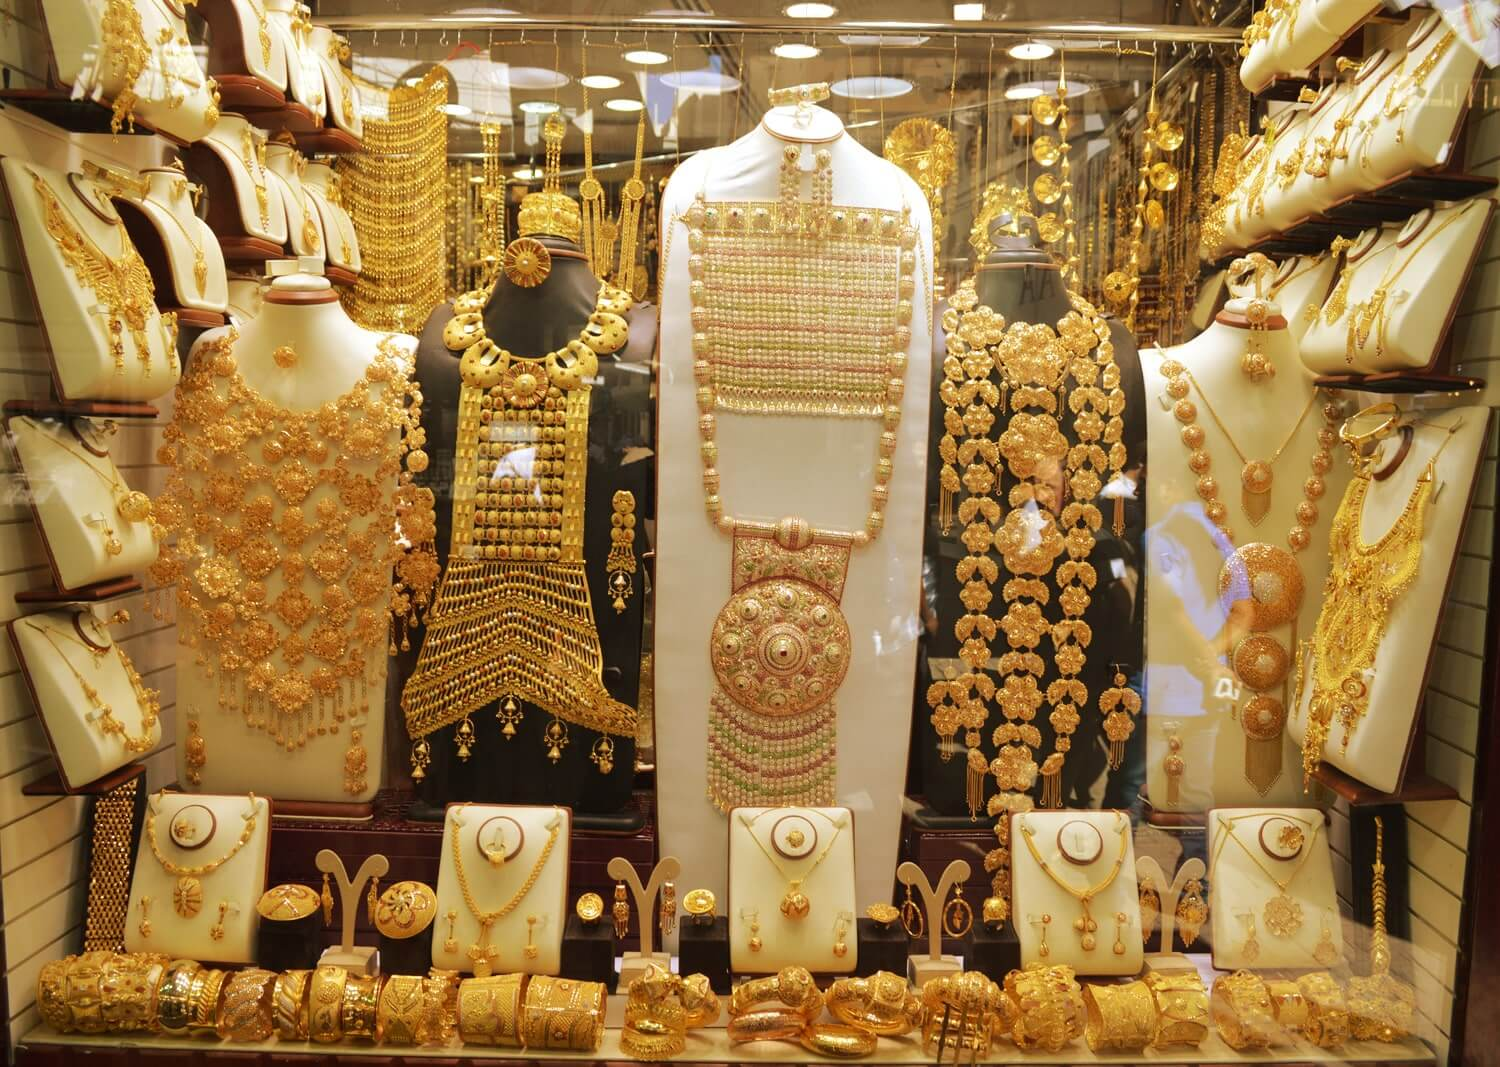 The Spices and Gold Souks